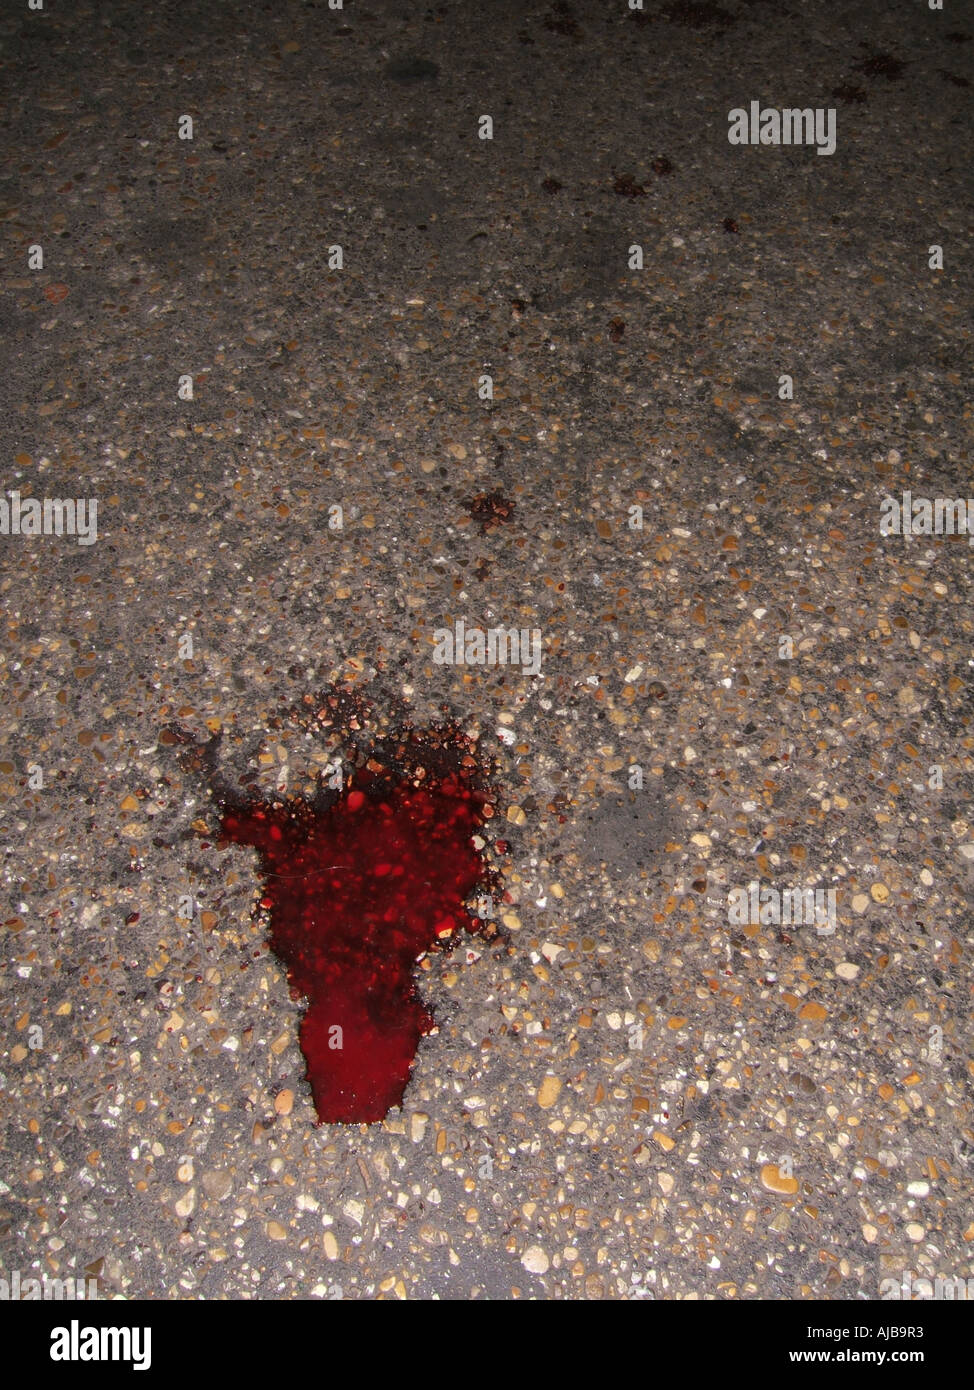 Blood stain on floor stock photo royalty free image for On the floor on the floor